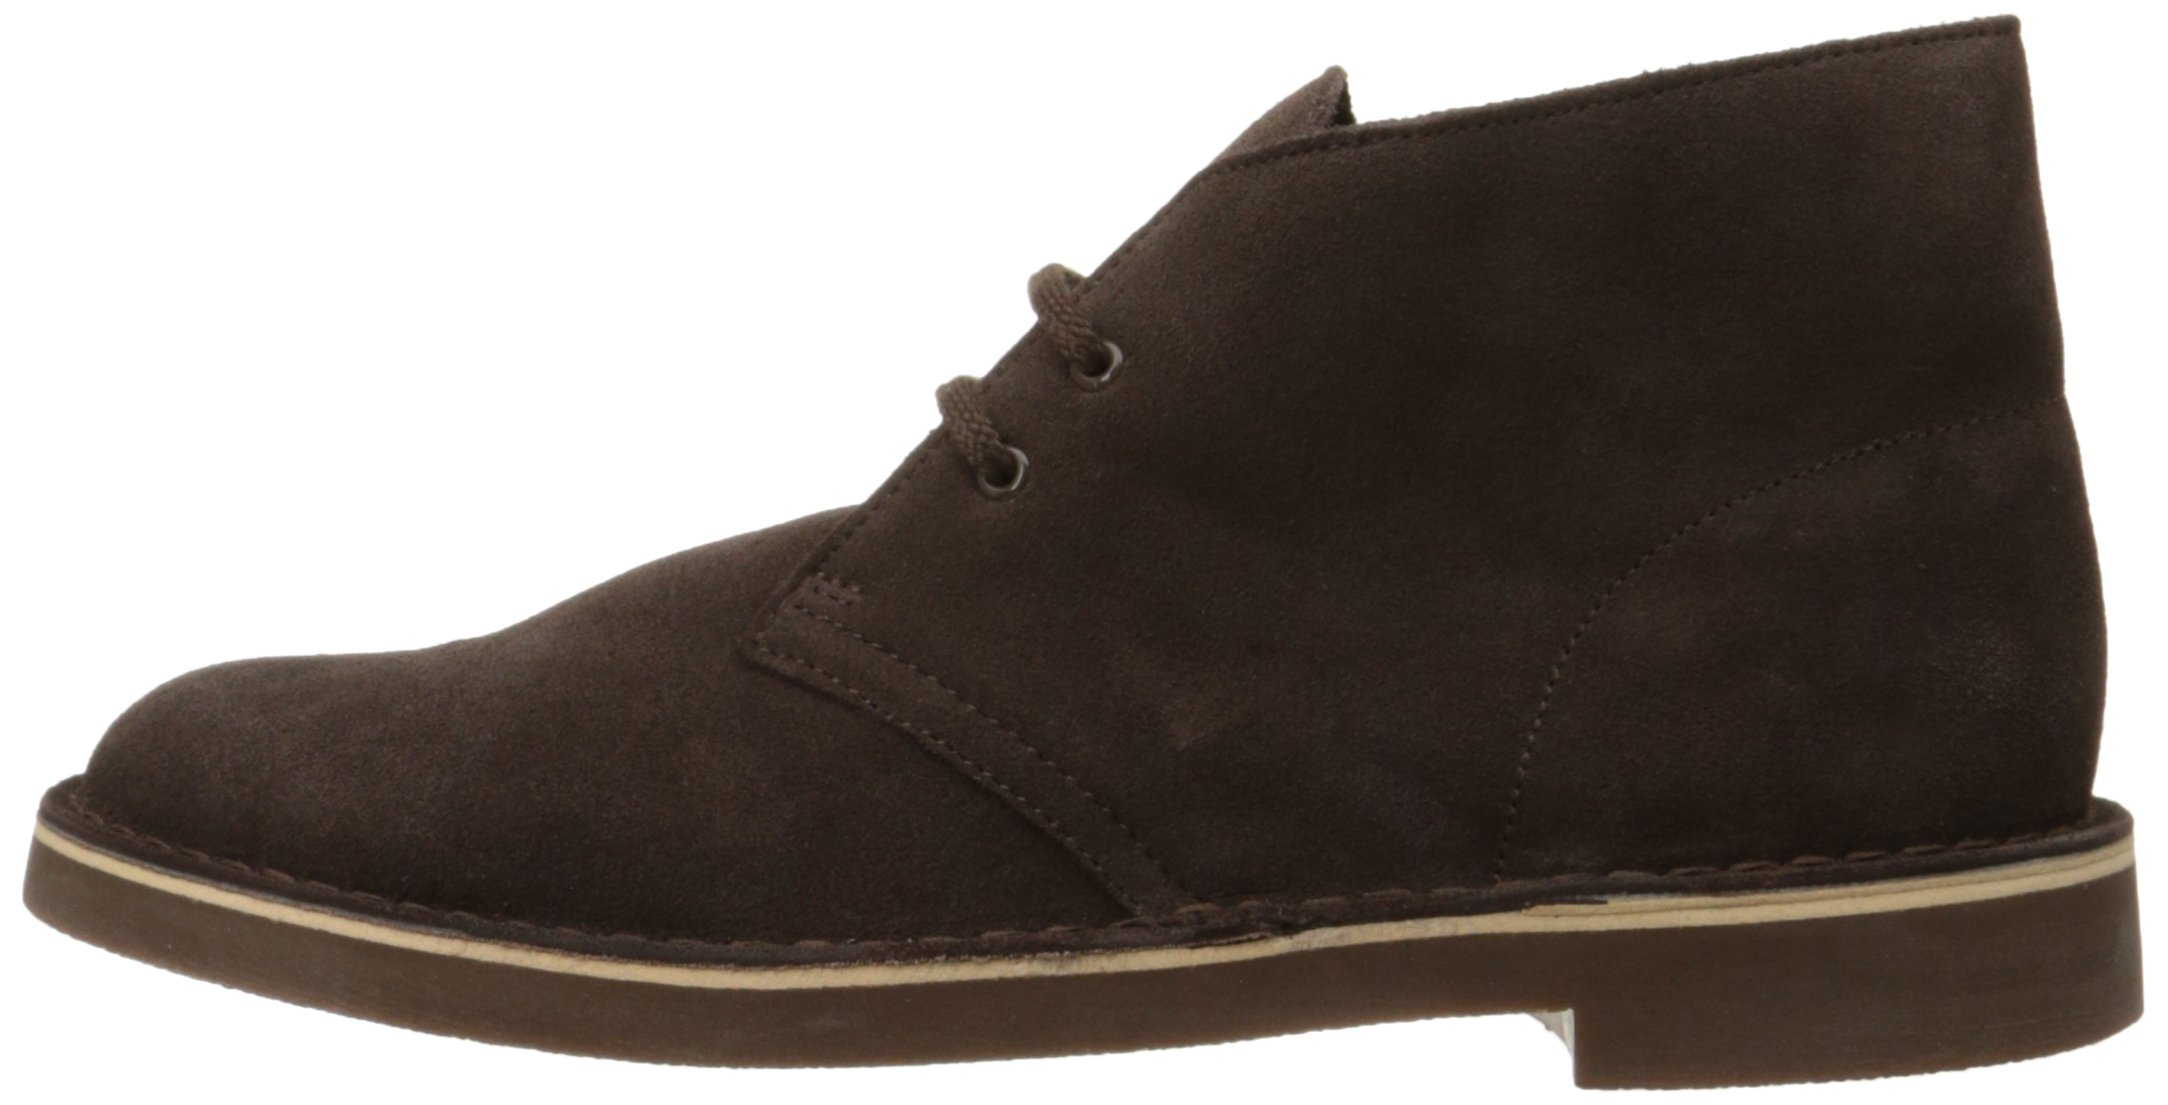 Clarks Men's Bushacre 2 Chukka Boot,Brown Suede,13 M US by CLARKS (Image #5)